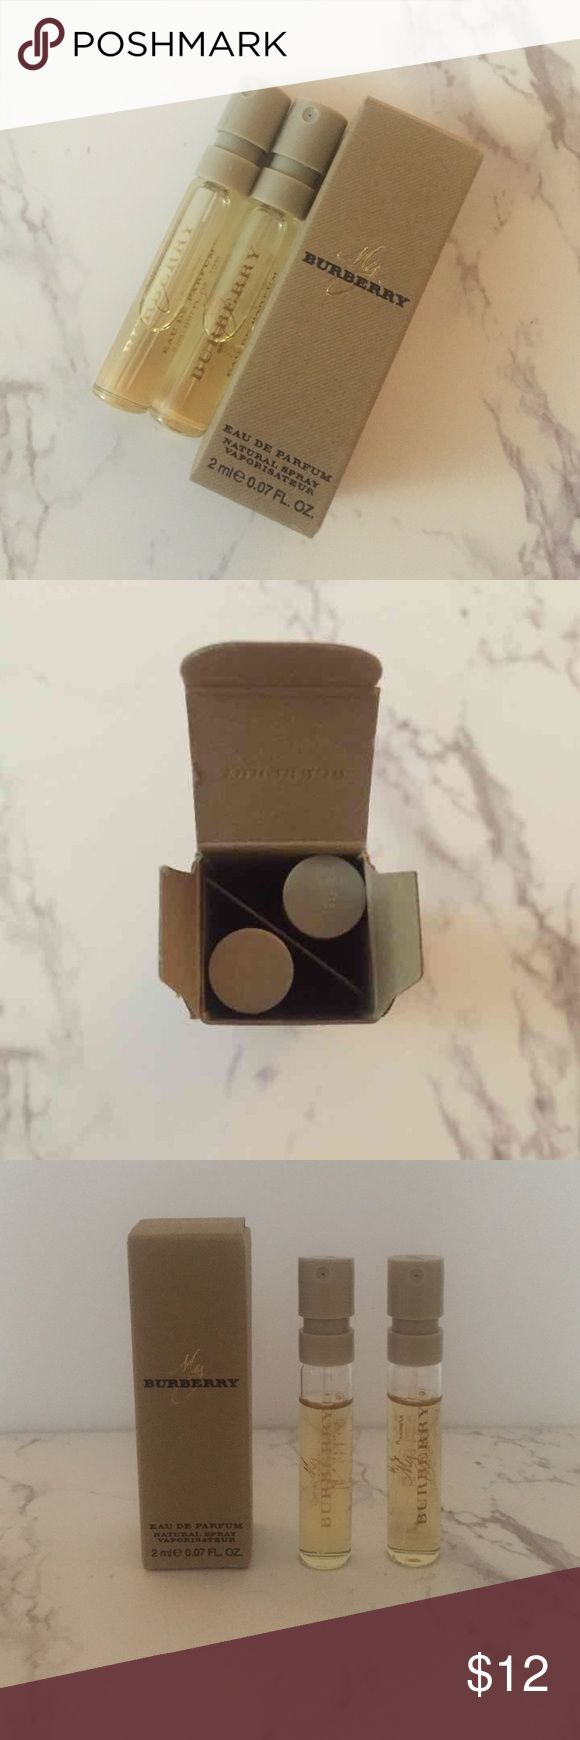 My Burberry Perfume 2 TESTER SIZES  0.07 fl oz each  Never Used  Price Is Firm  No Trades Burberry Makeup